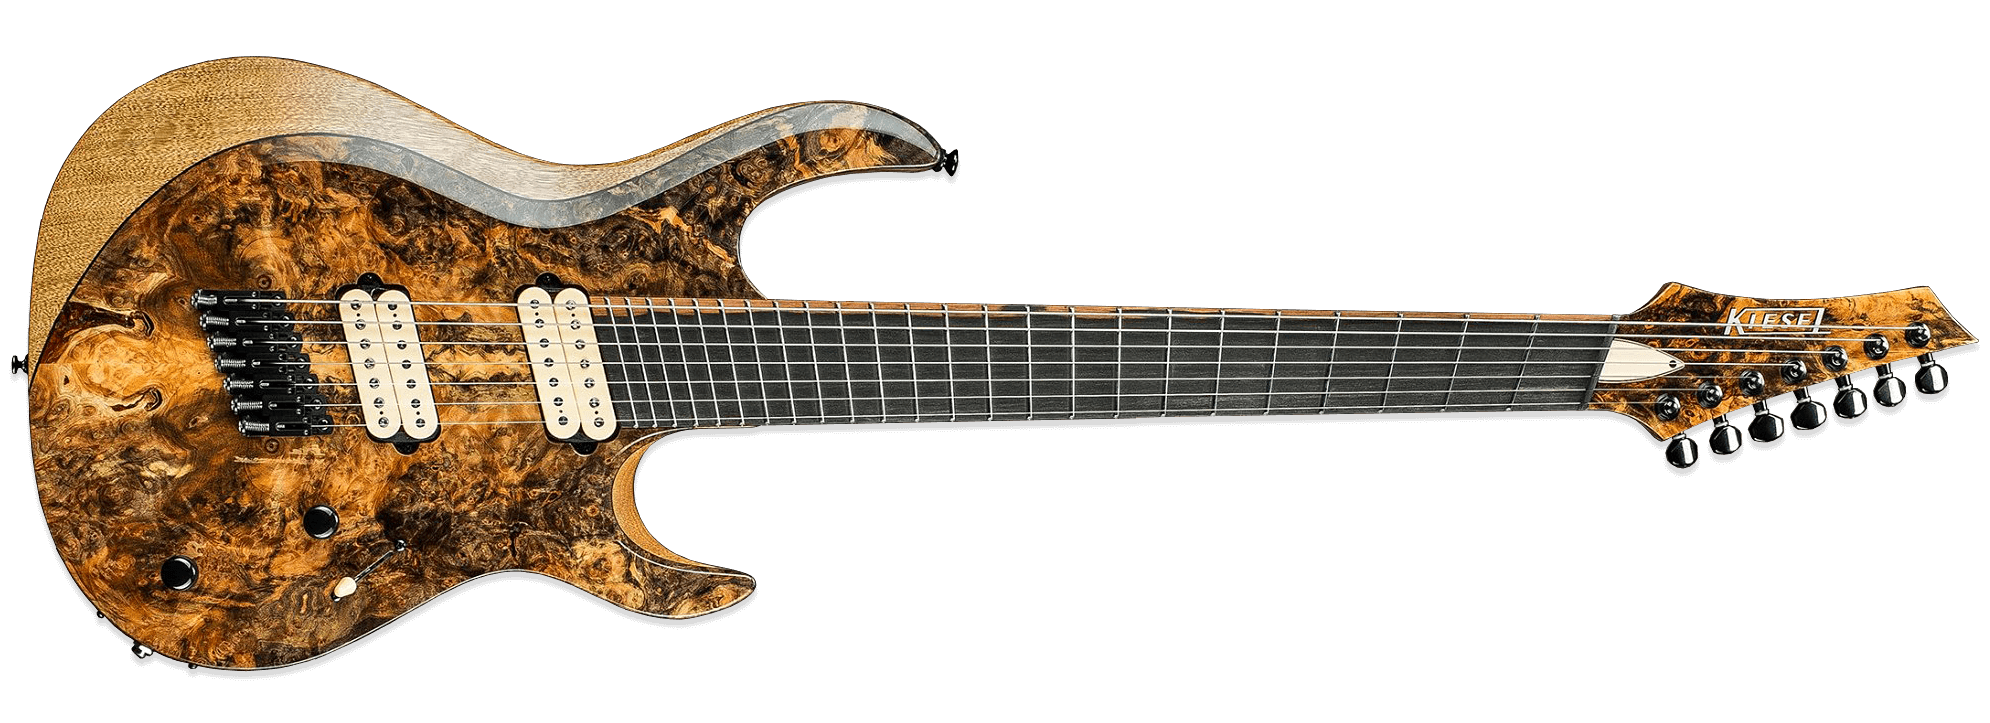 Kiesel Carvin Aries AM7 Multiscale Buckeye Burl